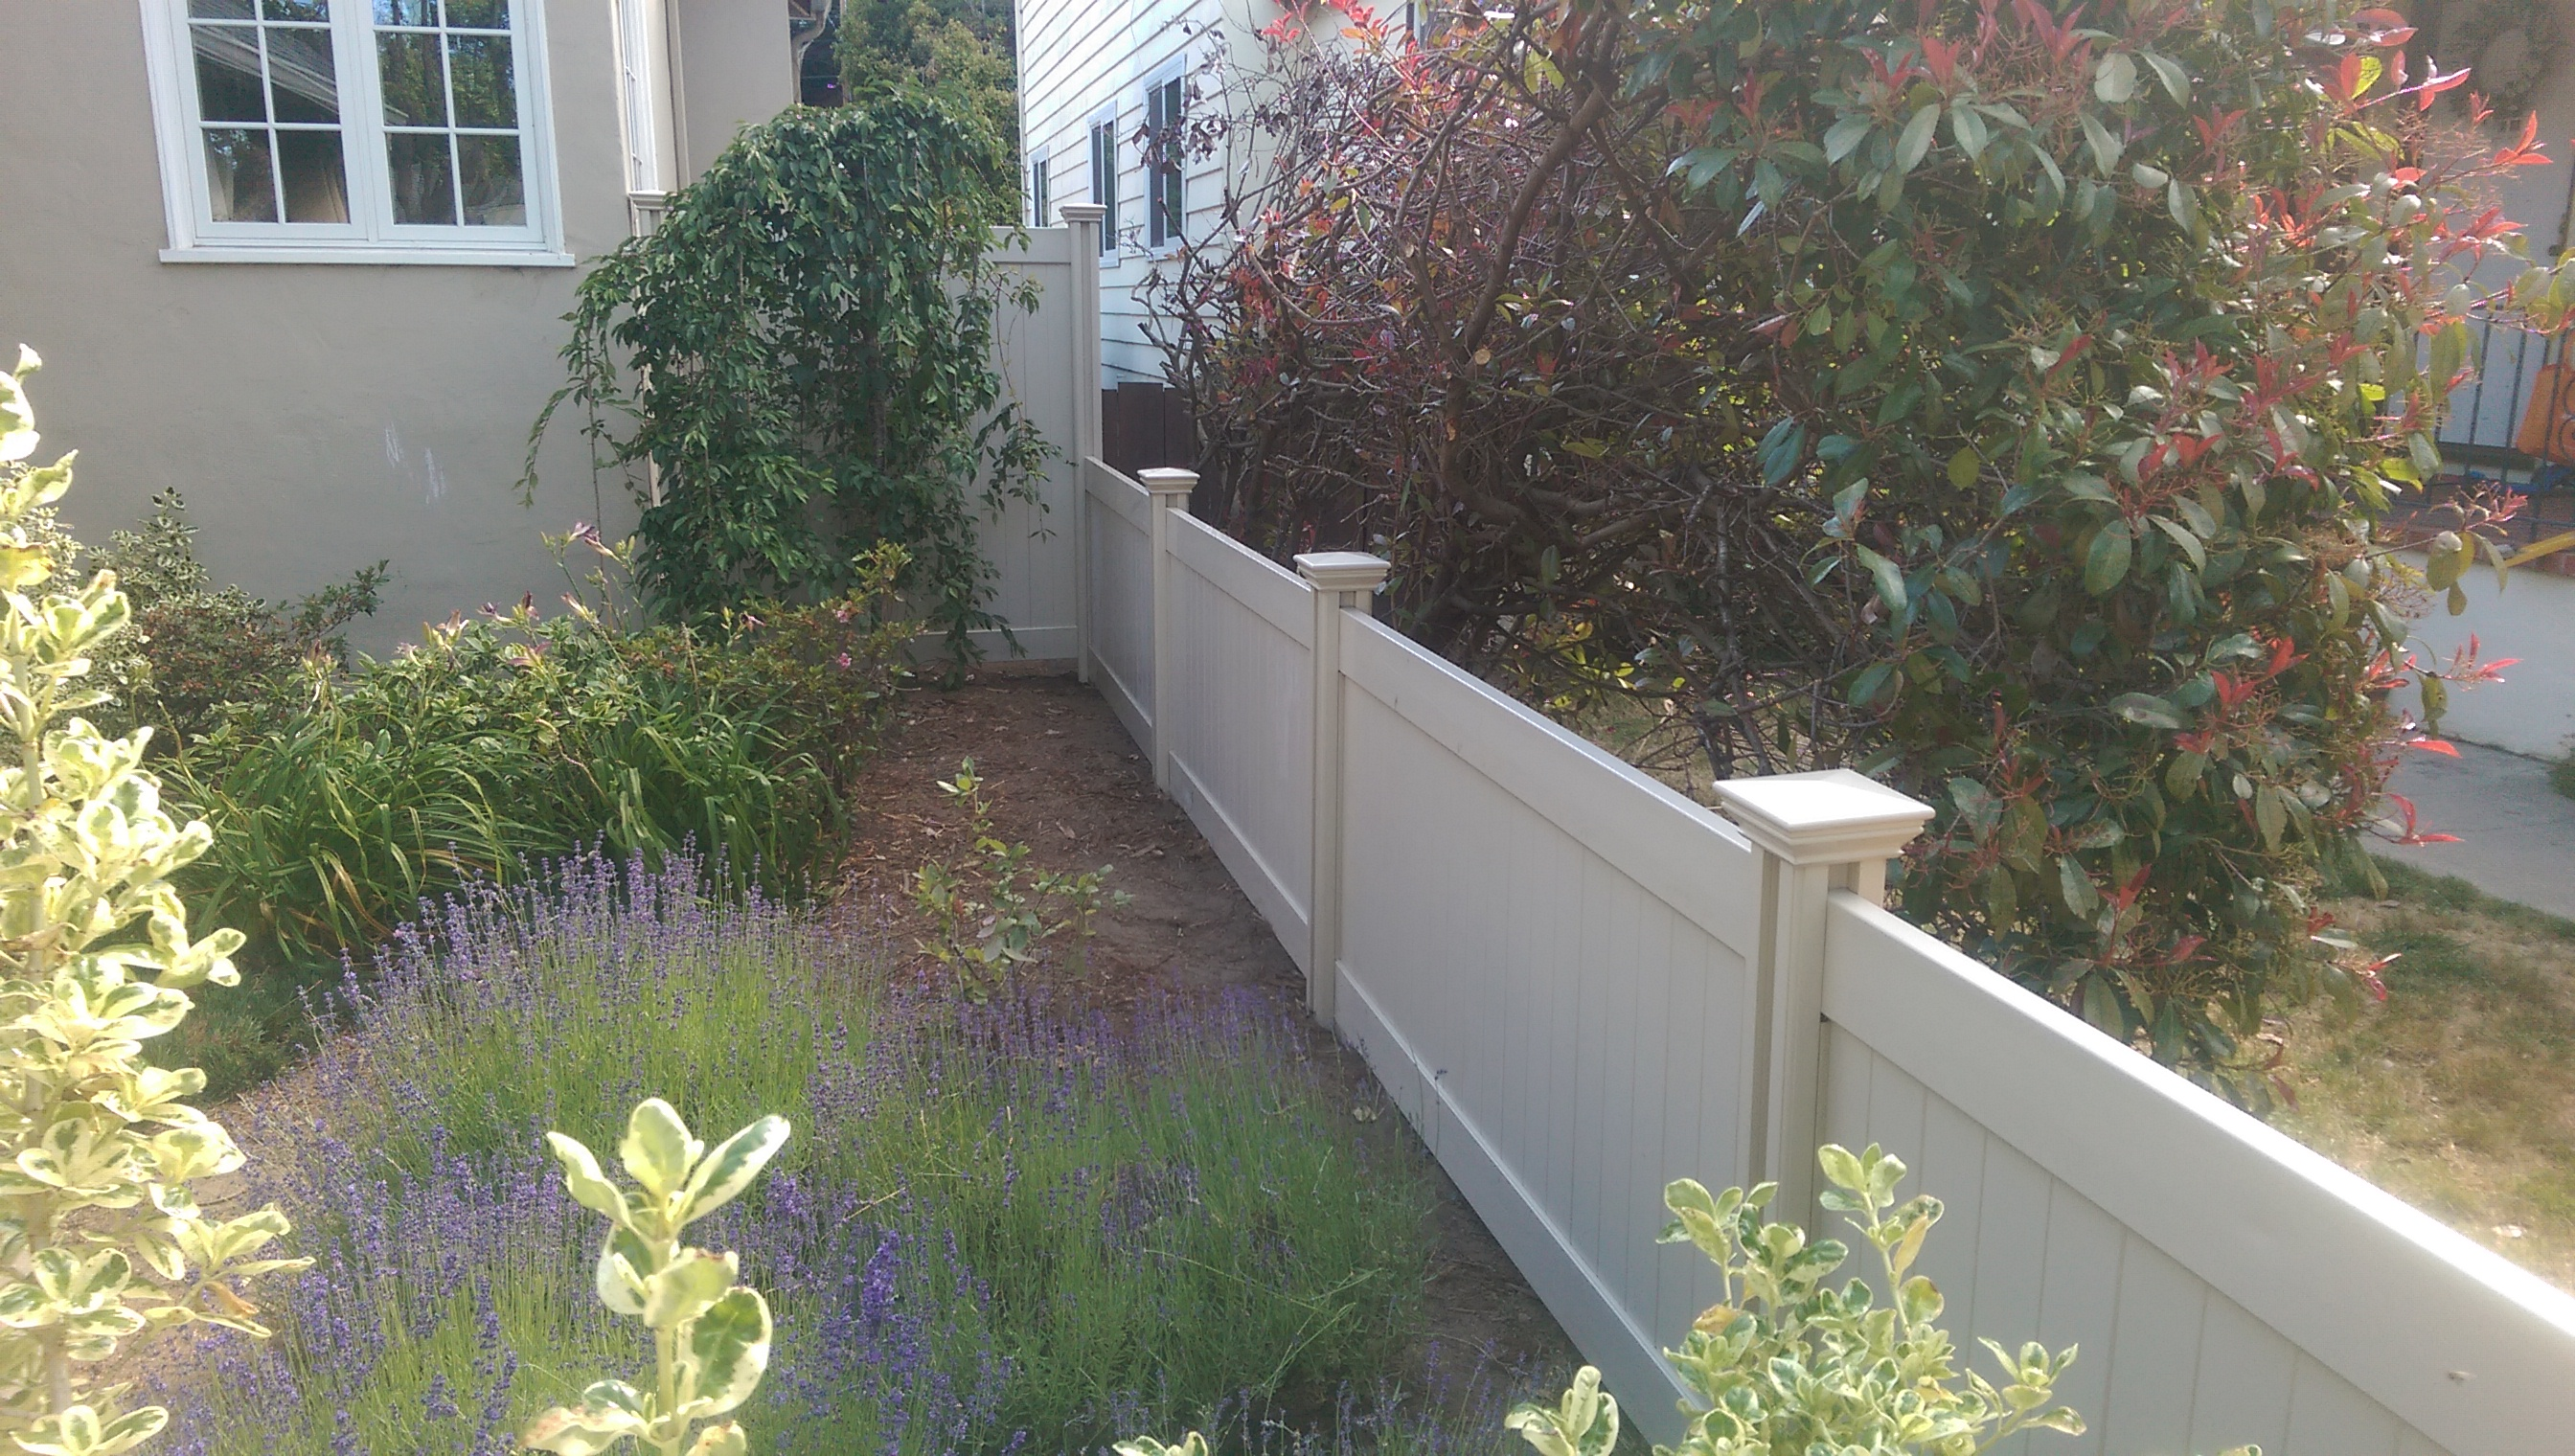 Dan replaced the wood fence with a tan privacy fence. He cuts it down from 6ft to 4ft.